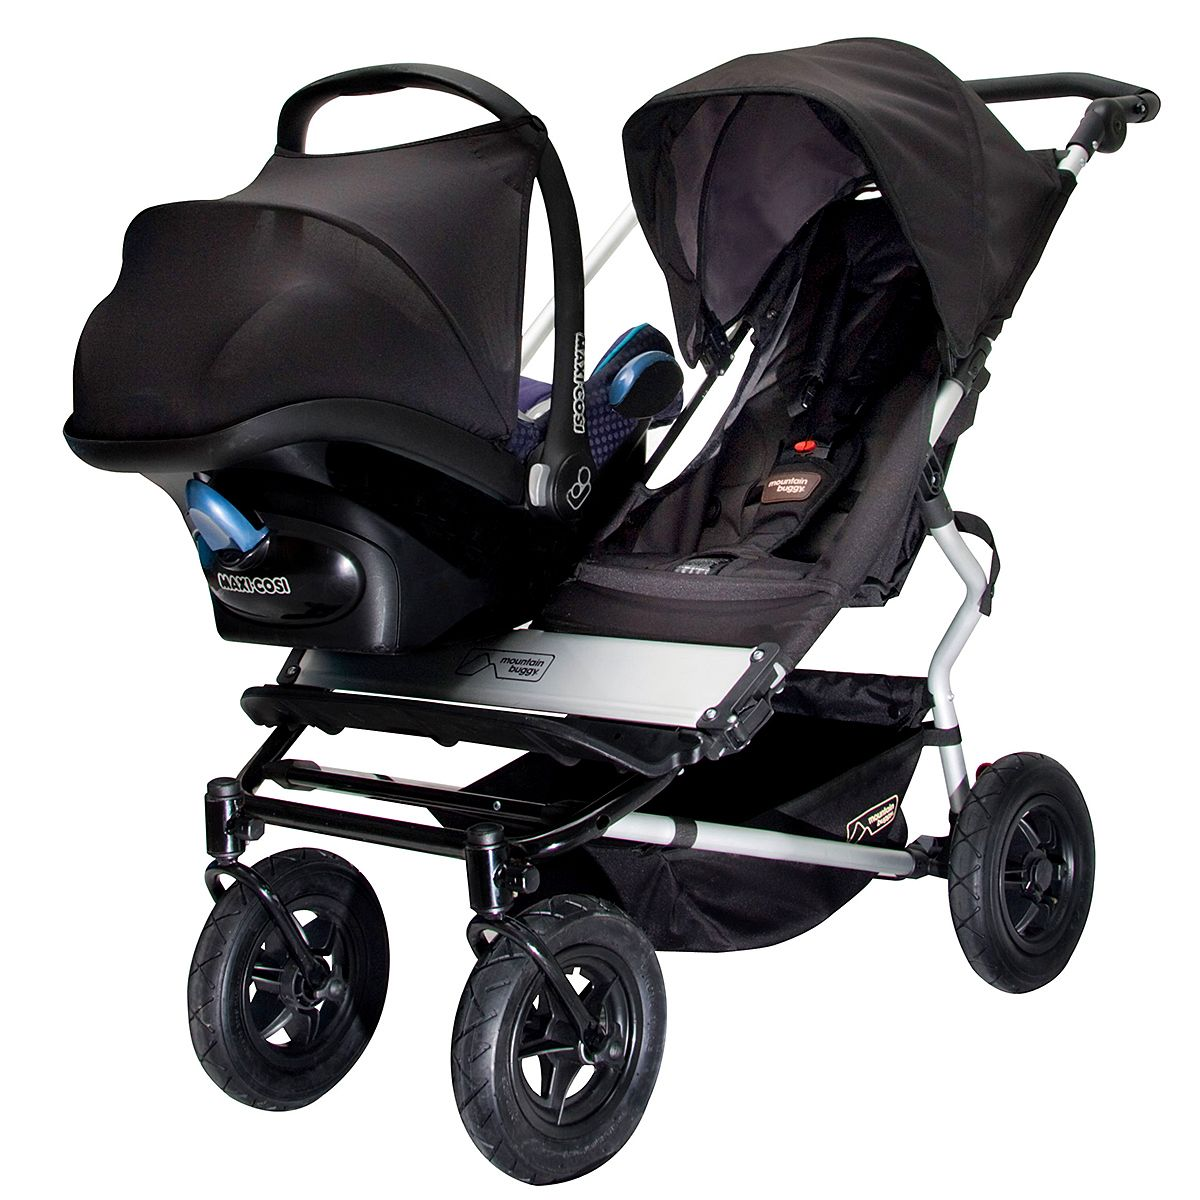 The Duet Side By Double Buggy From Mountain Is Designed For Adaptability And Can Take A Car Seat Capsule Ideal Two Children